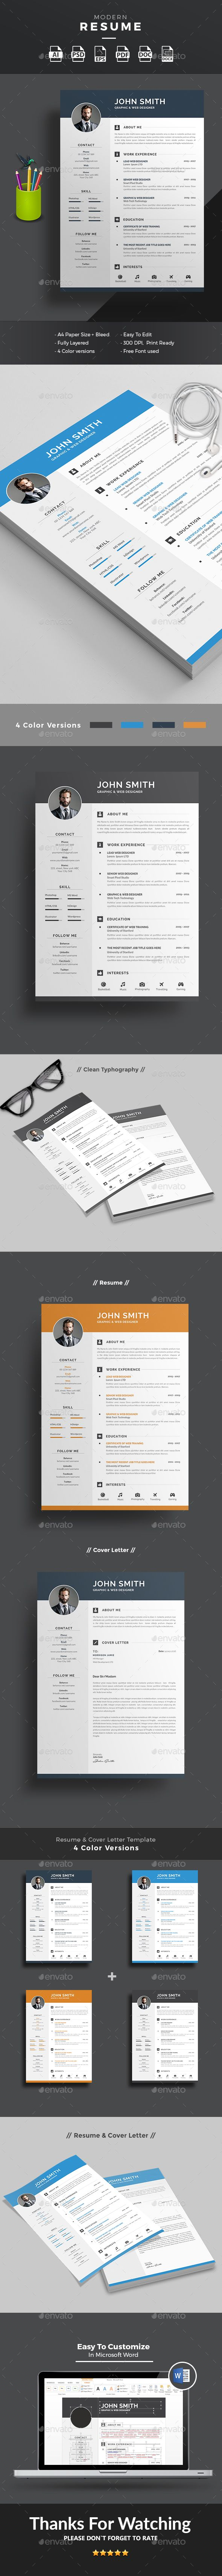 #Resume - Resumes #Stationery Download here: https://graphicriver.net/item/resume/17494830?ref=classicdesignp